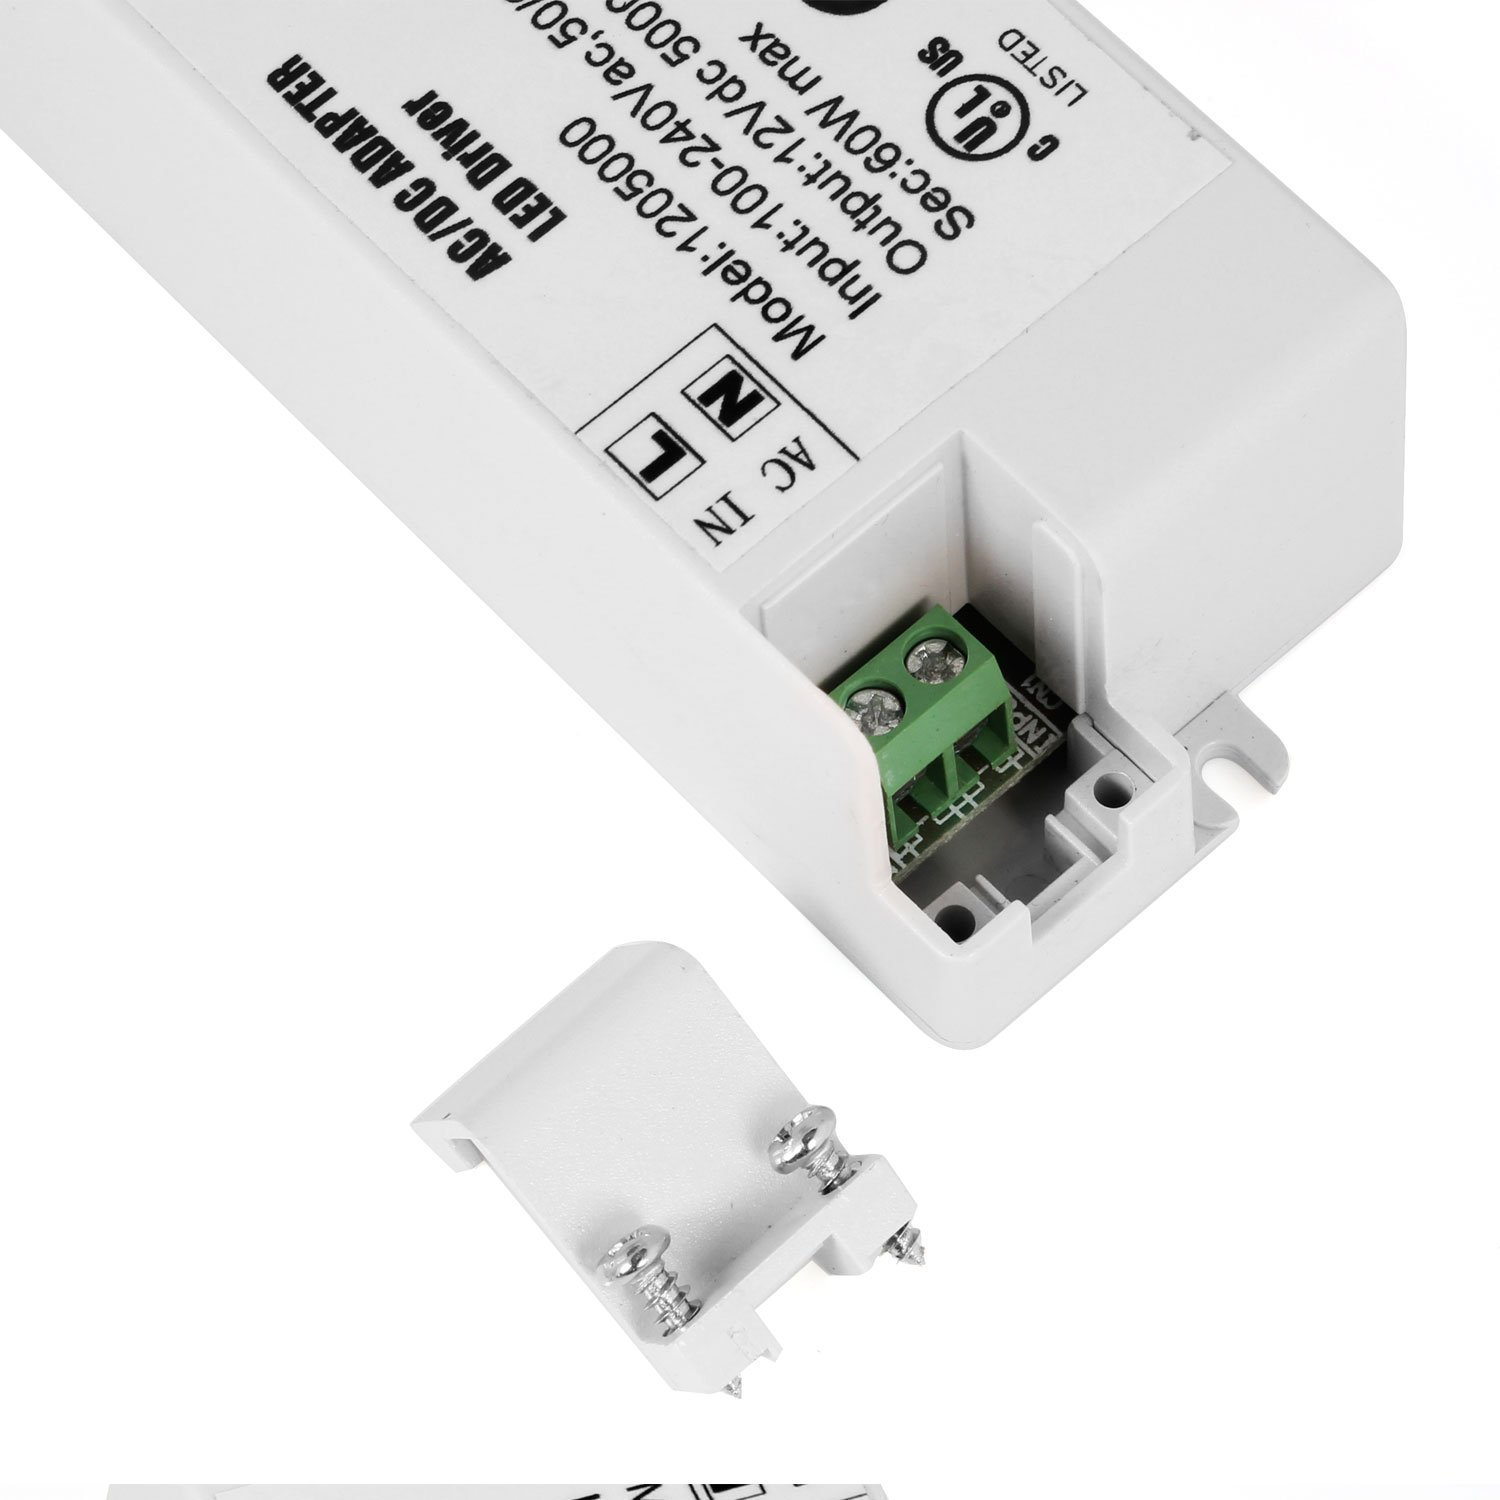 YAYZA! 4-Pack Premium IP44 12V 5A 60W Low Voltage LED Driver Transformer AC DC Switching Power Supply by YAYZA! (Image #5)